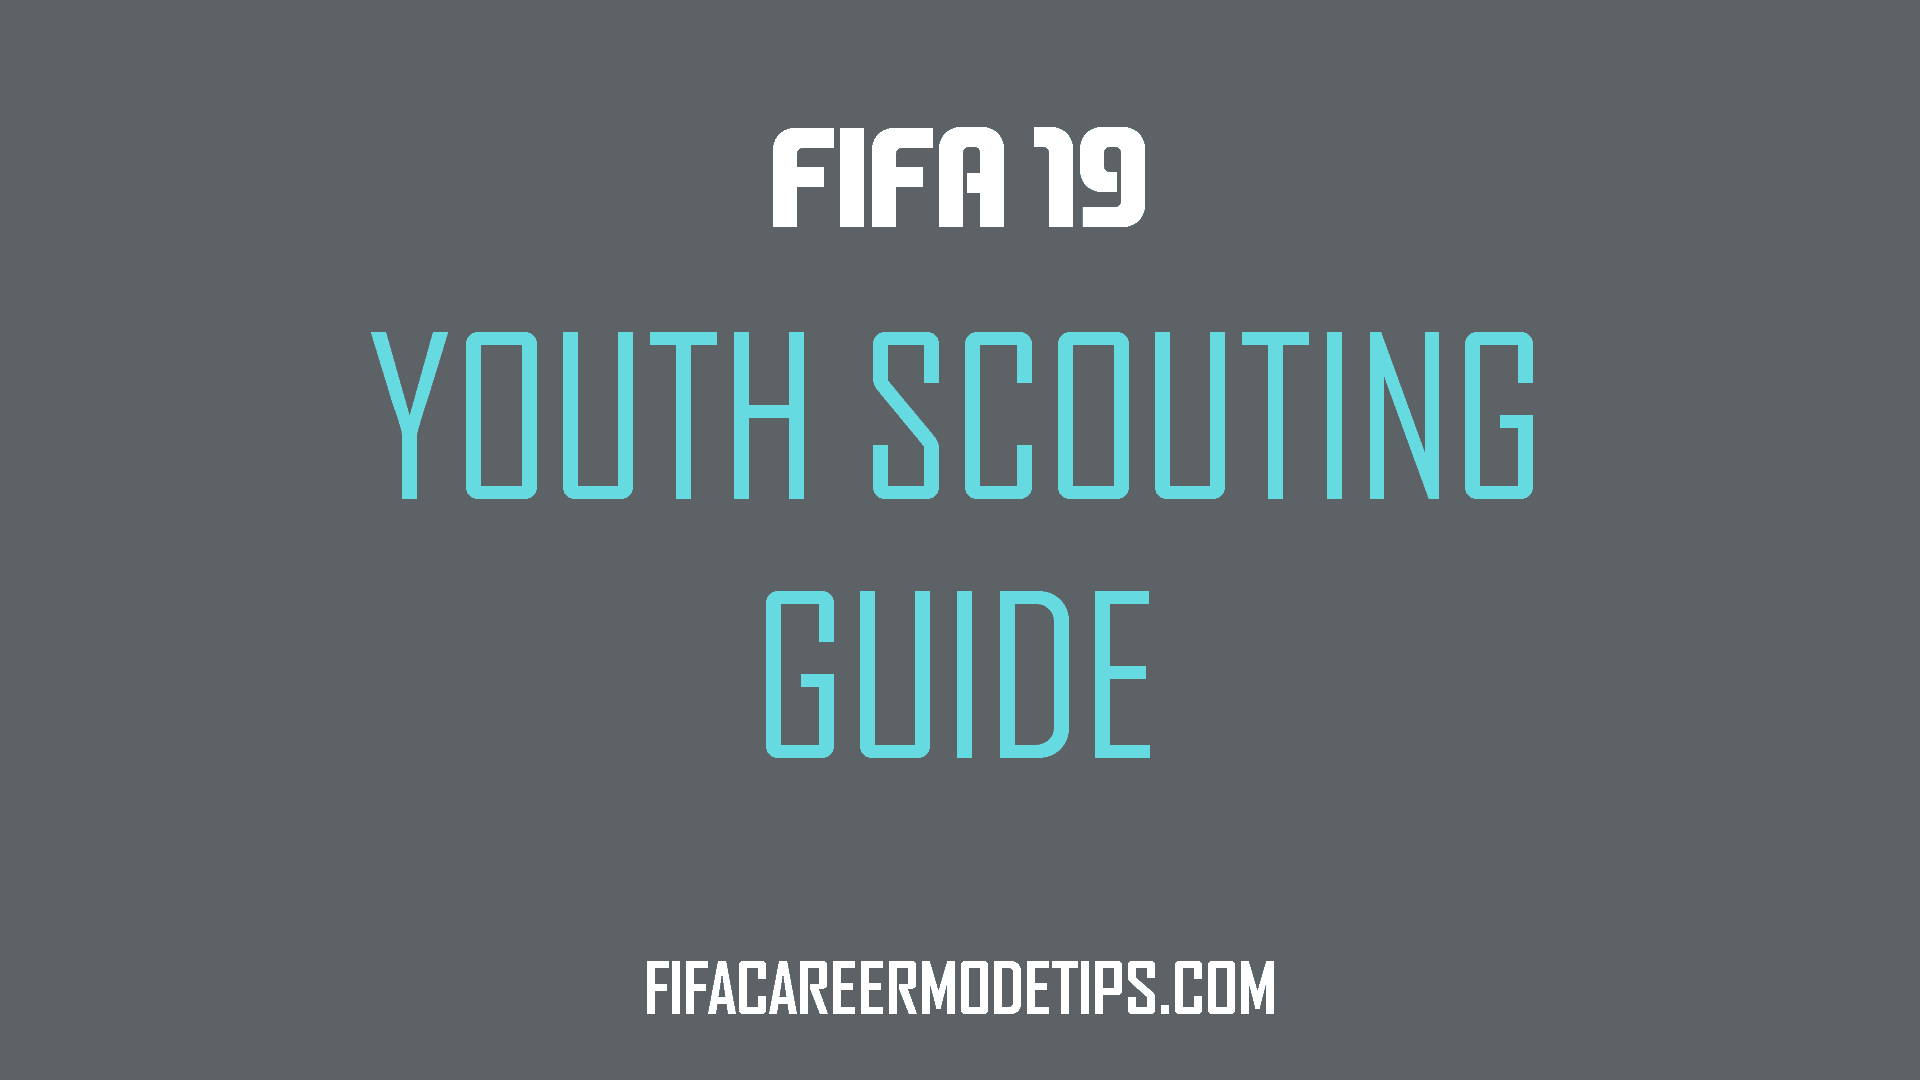 FIFA 19 Youth Scouting Guide - FIFA Career Mode Tips